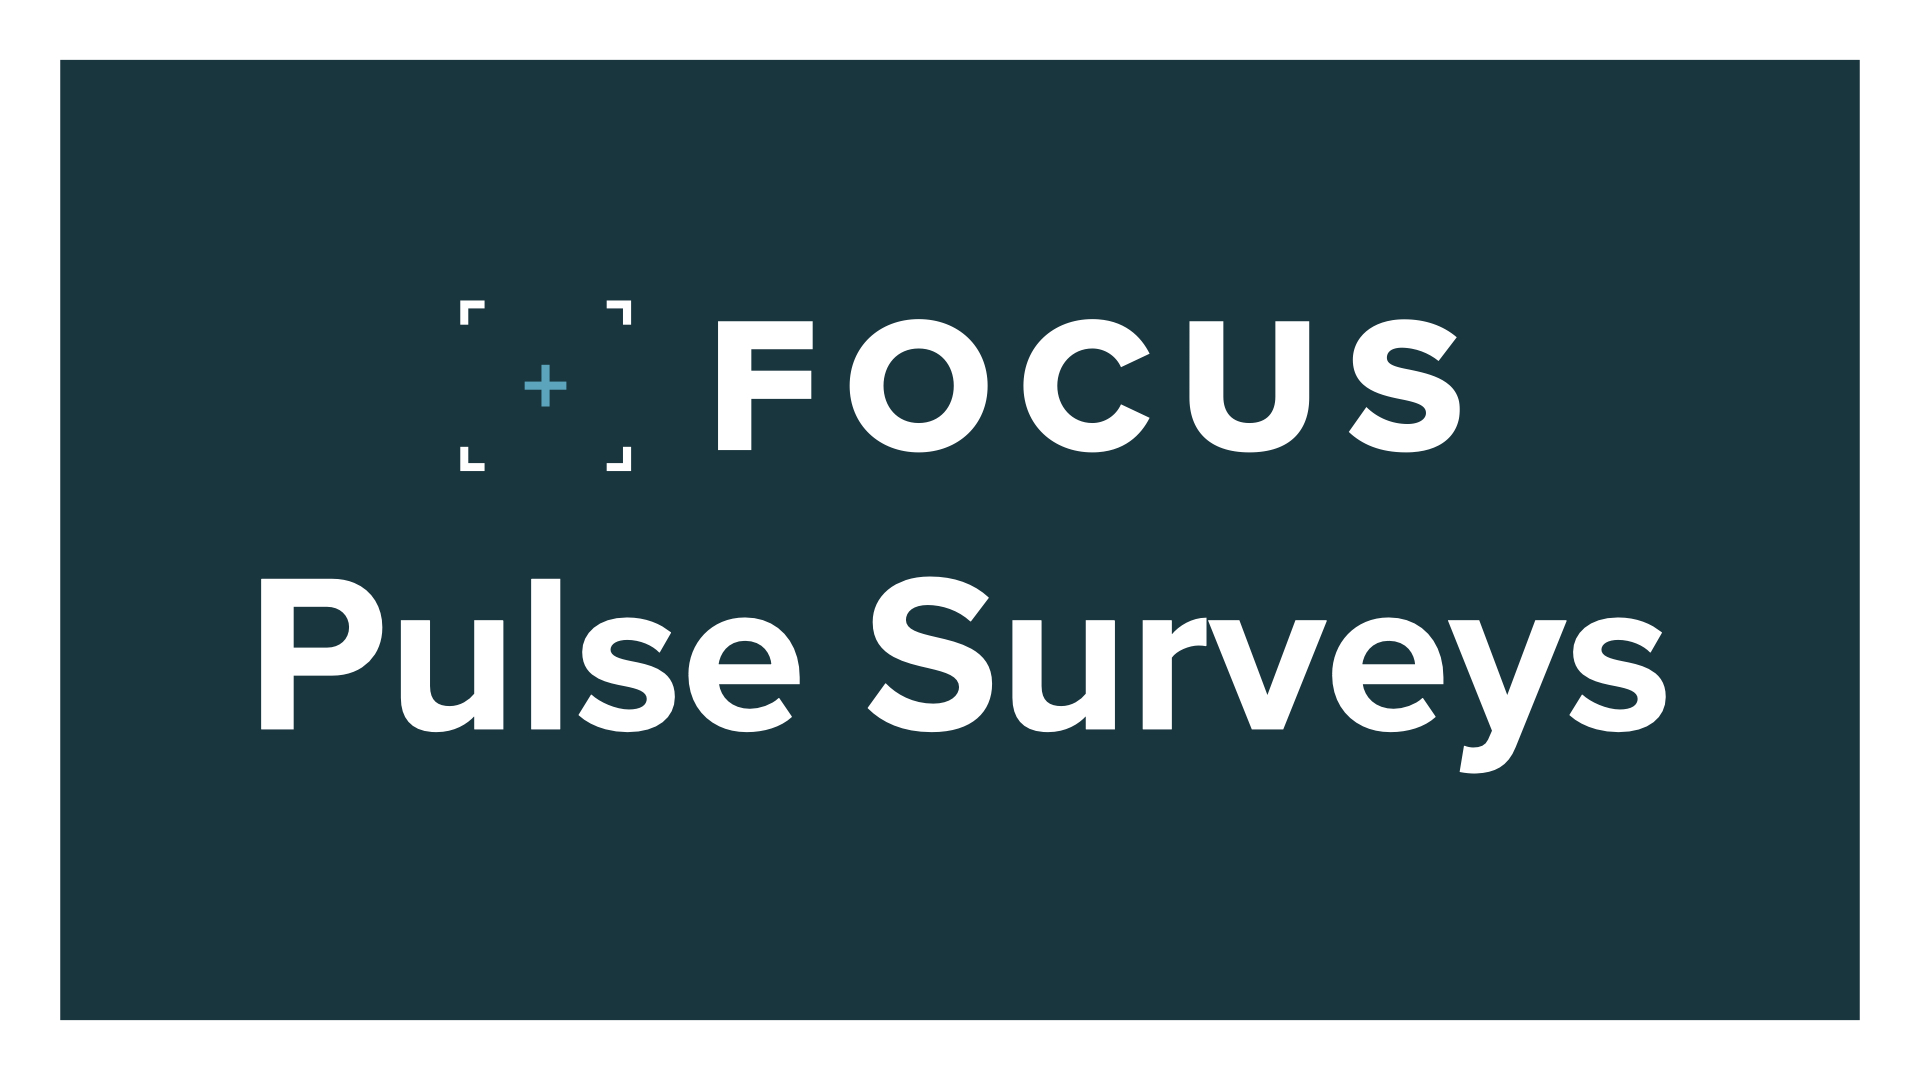 Focus Pulse Surveys